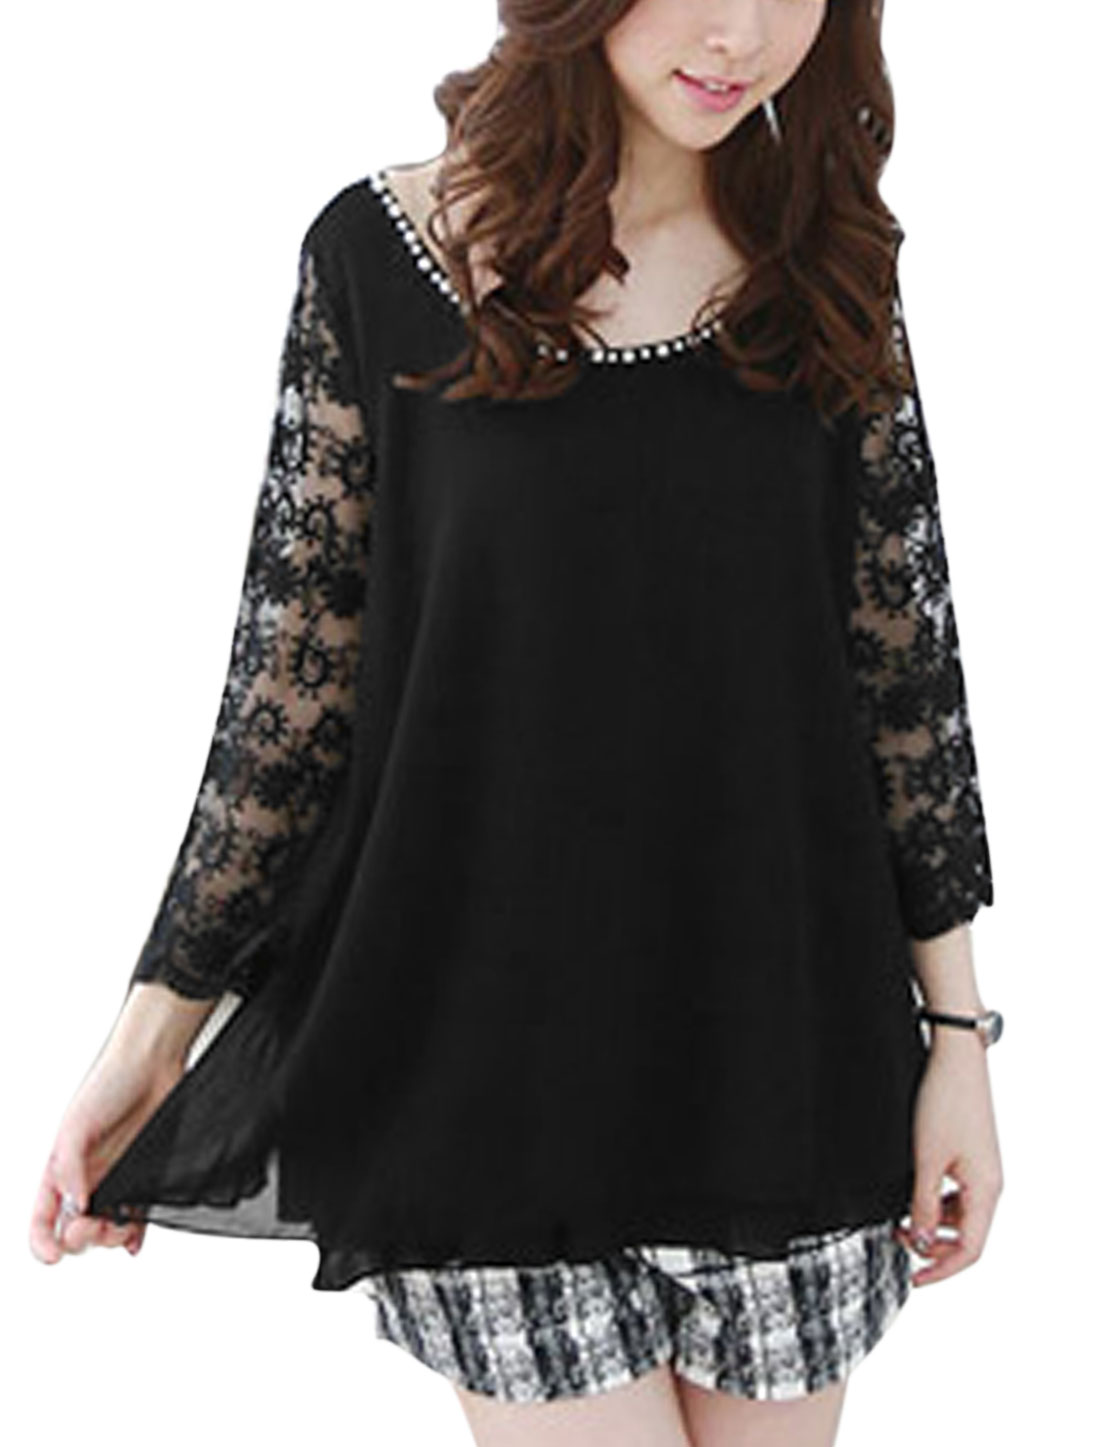 Ladies Round Neck Long Crochet Sleeve Lace Panel Chiffon Blouse Black S